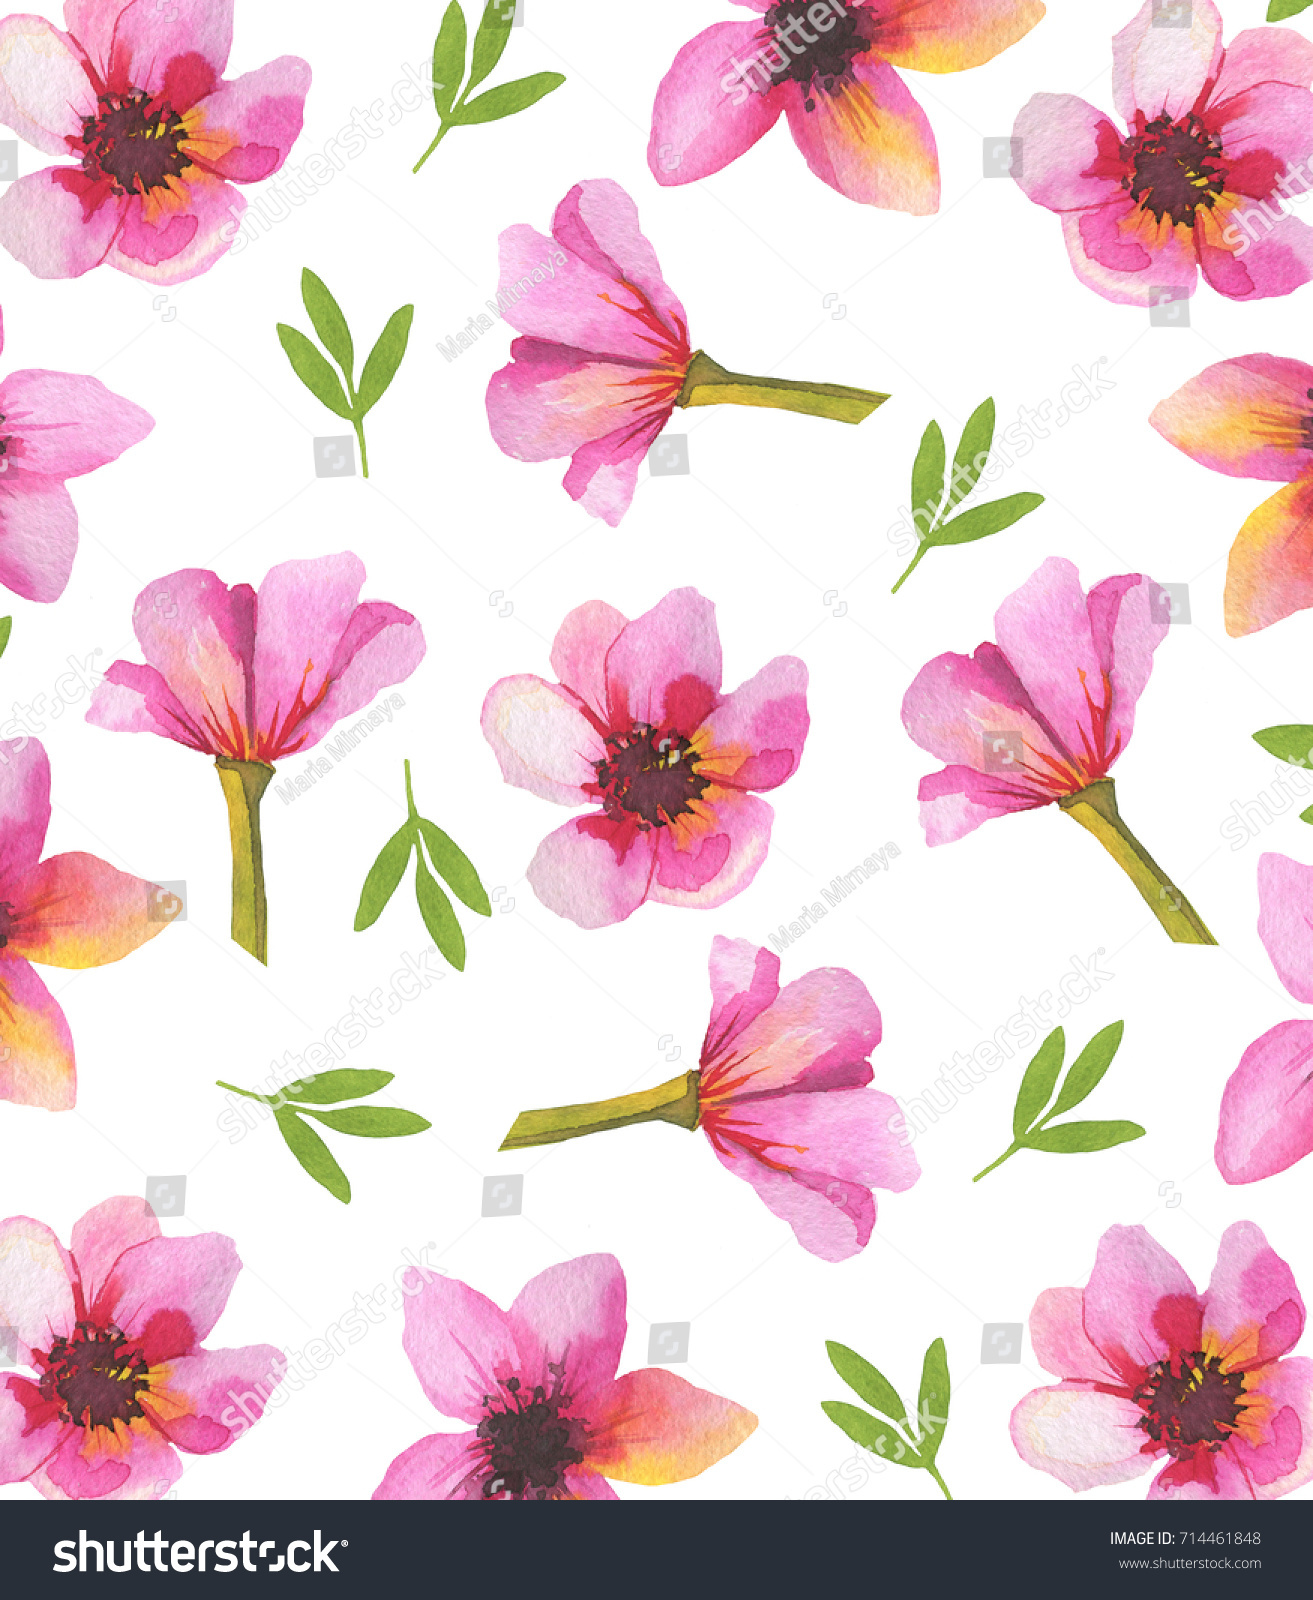 Background Made Handdrawn Watercolor Spring Flowers Stock